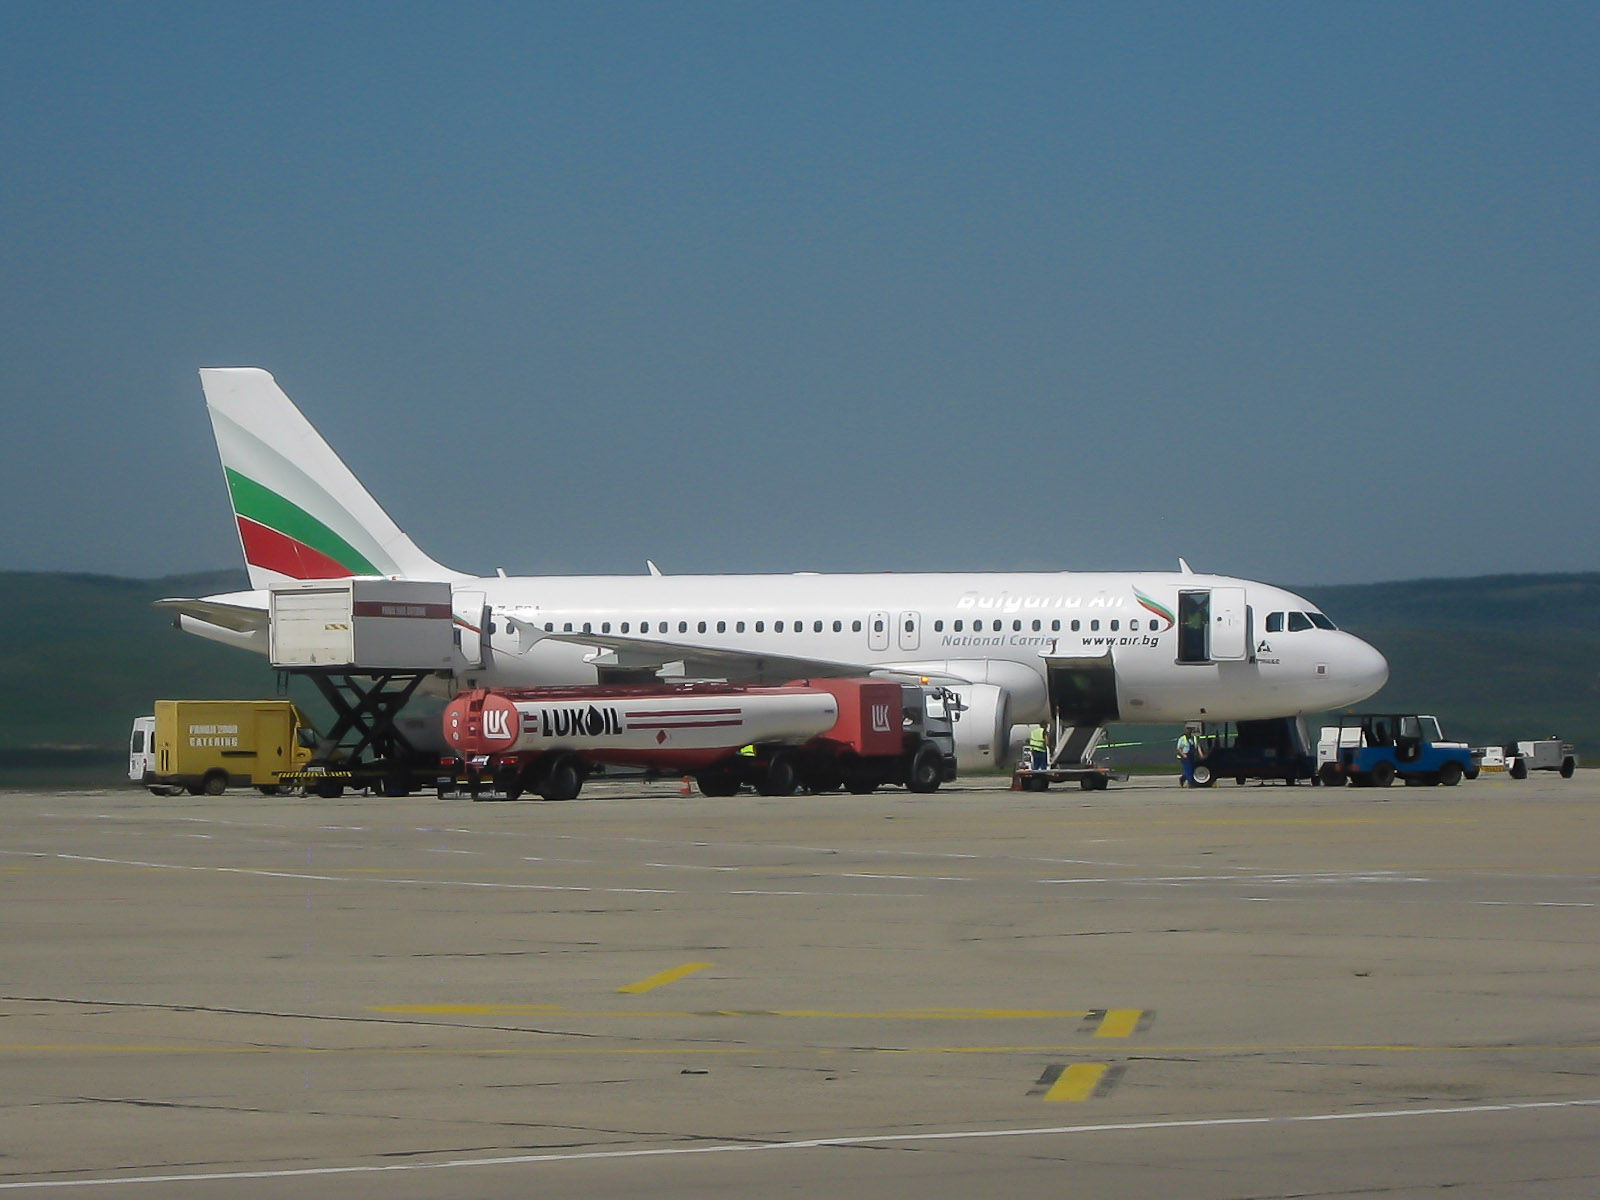 Airbus A319 Bulgaria Air at the Burgas airport